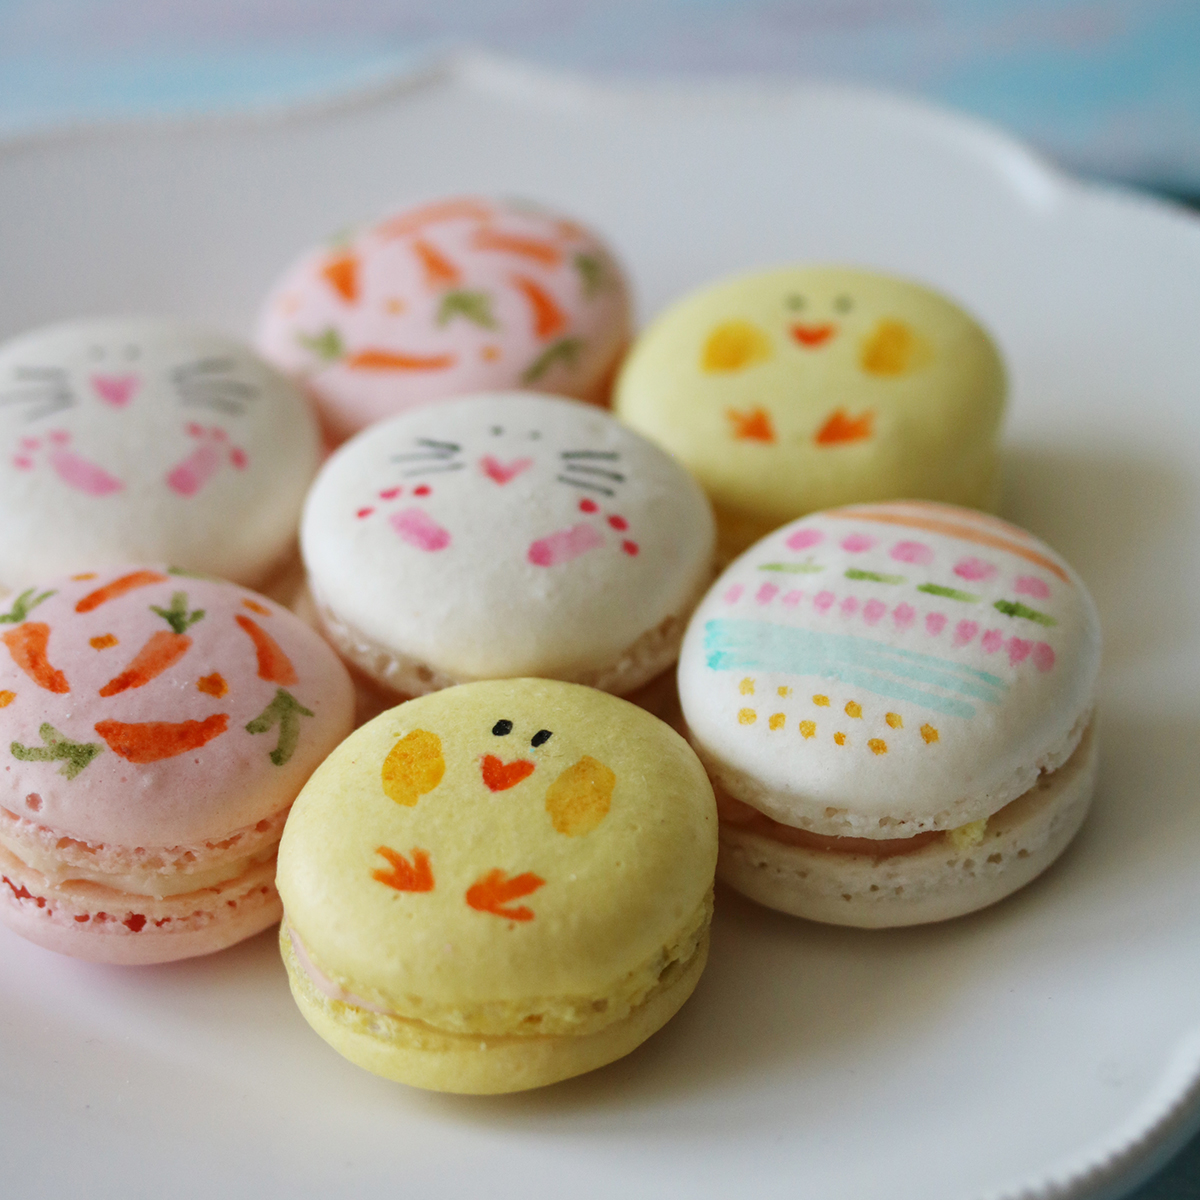 diy sweet ideas for entertaining and favors - painted macarons | Lorrie Everitt Studio